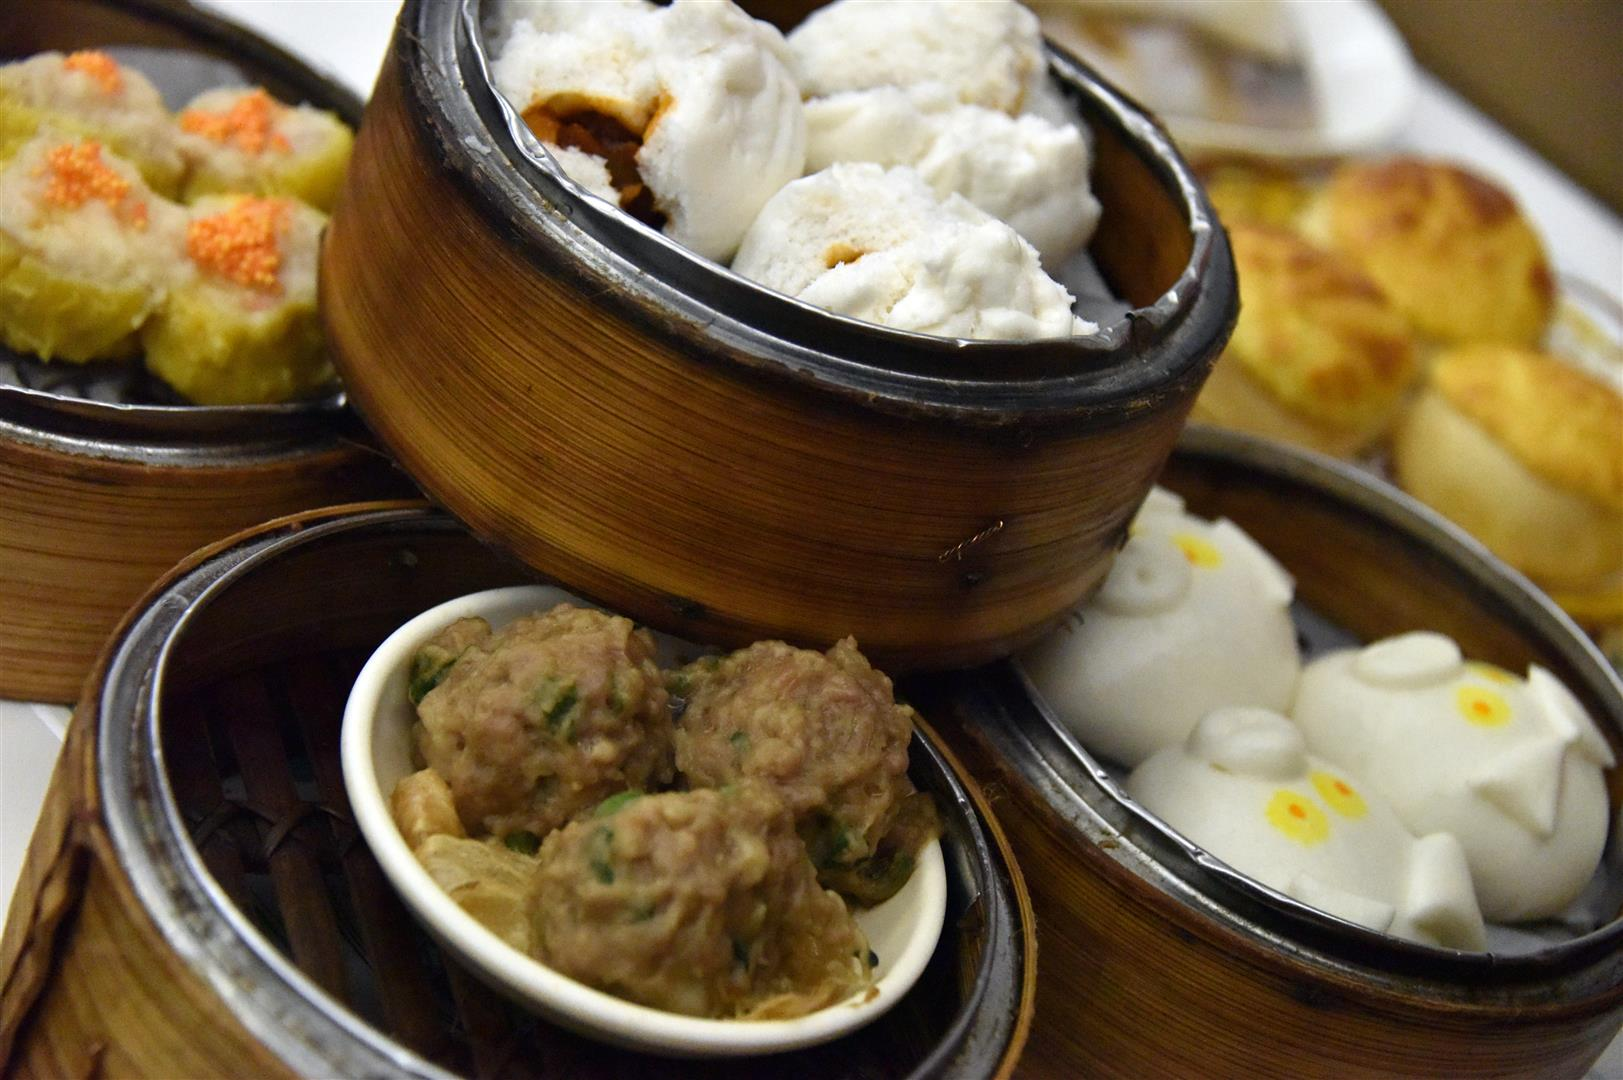 Food - Hong Kong - Dim Dim Sum (Large) - Copy